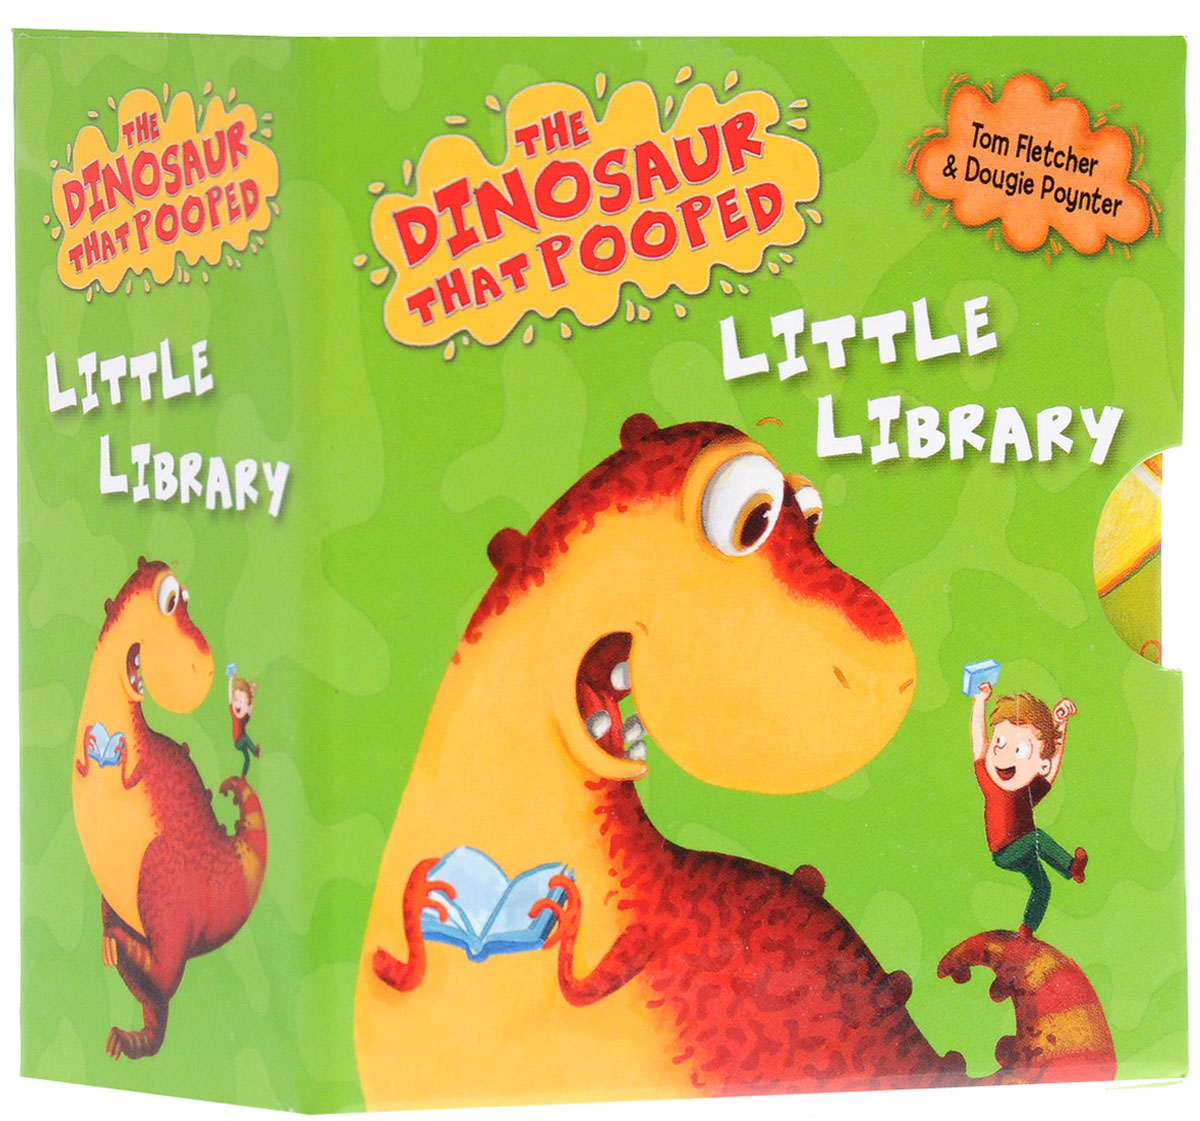 The Dinosaur That Pooped Little Library little library 6 books